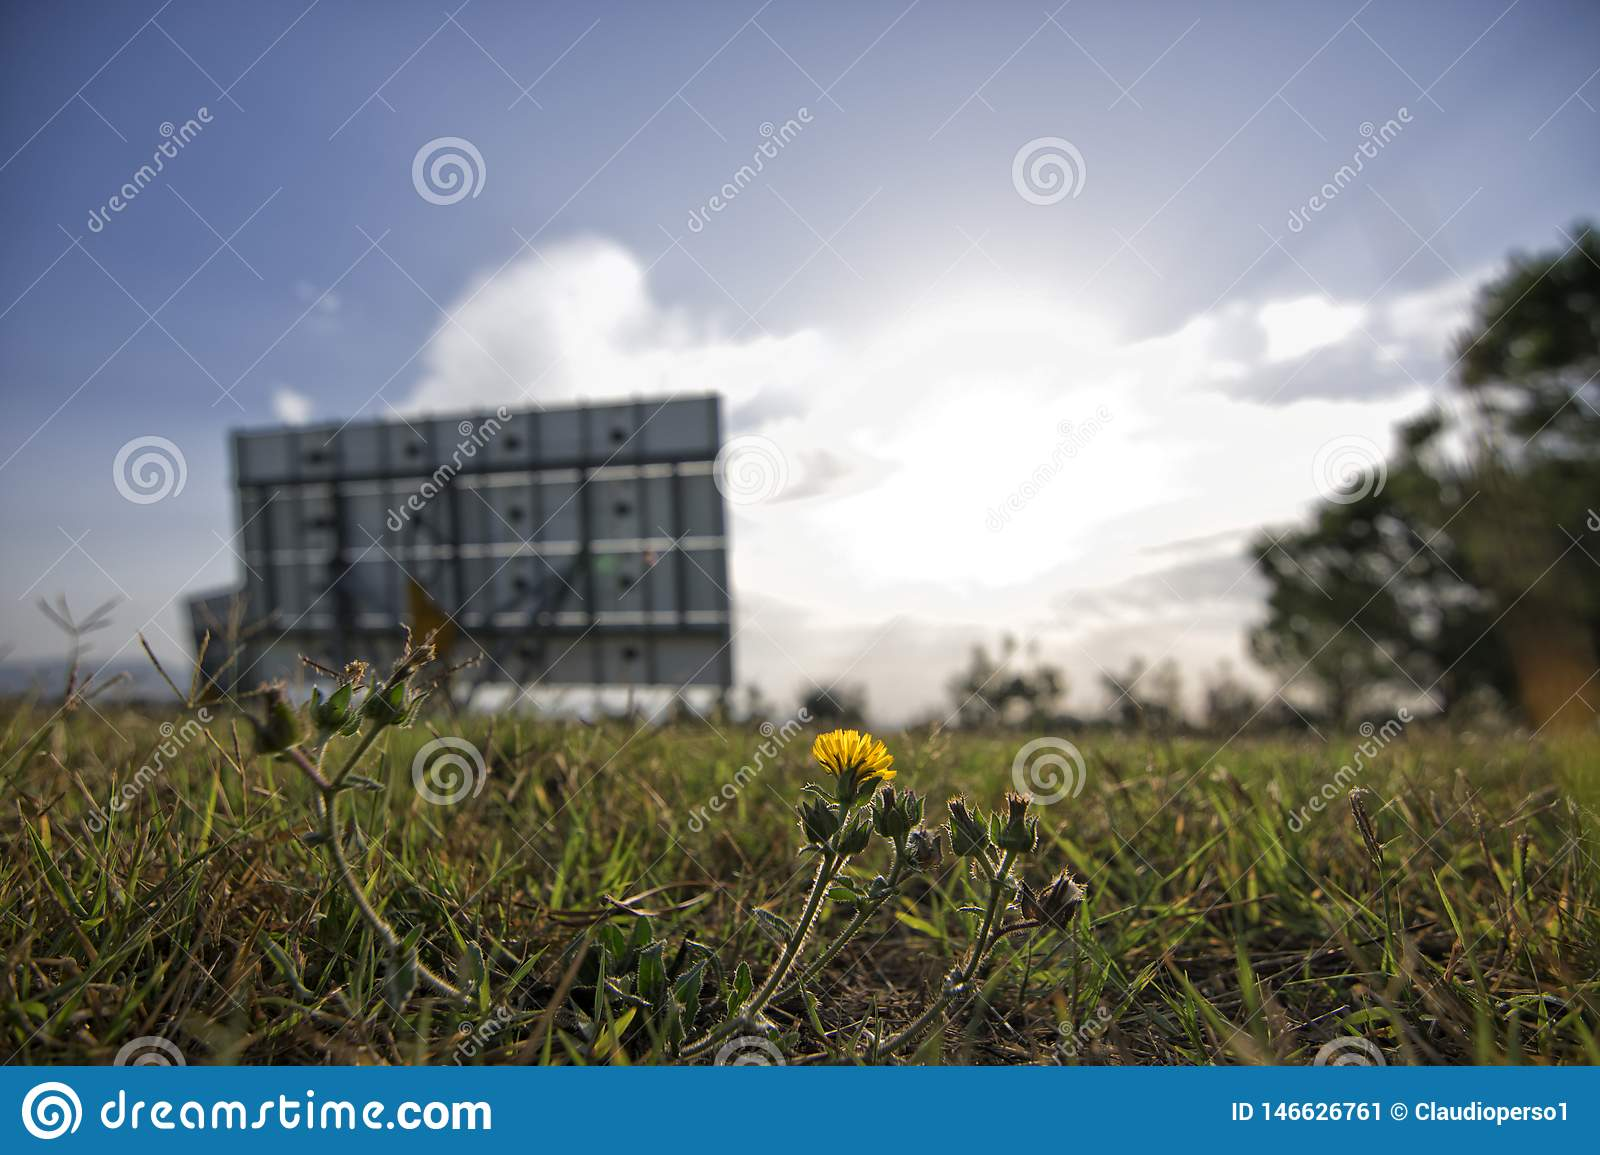 A field with flowers and a green energy solar panel